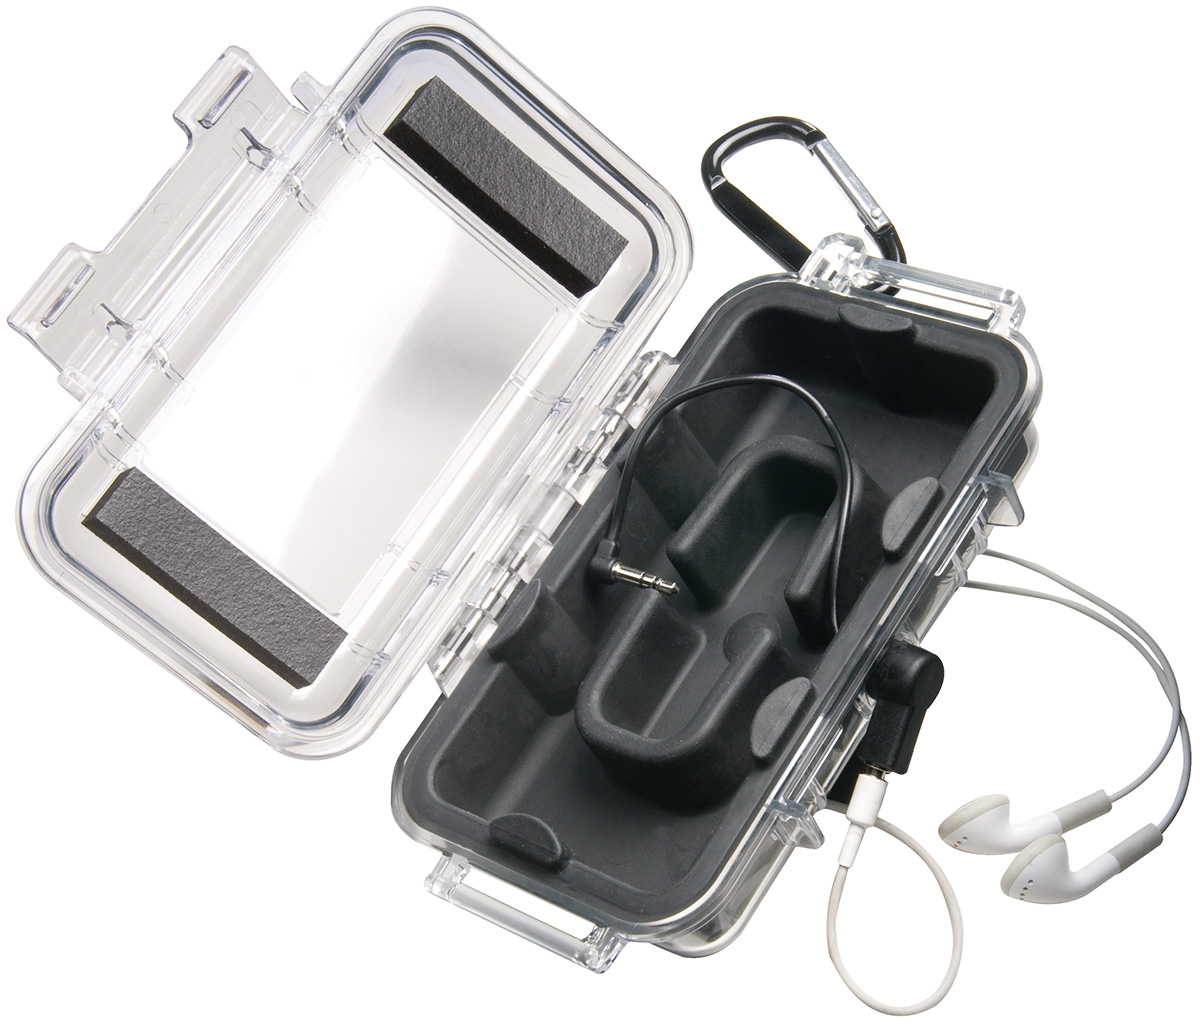 pelican i1015 waterproof apple iphone 4 case